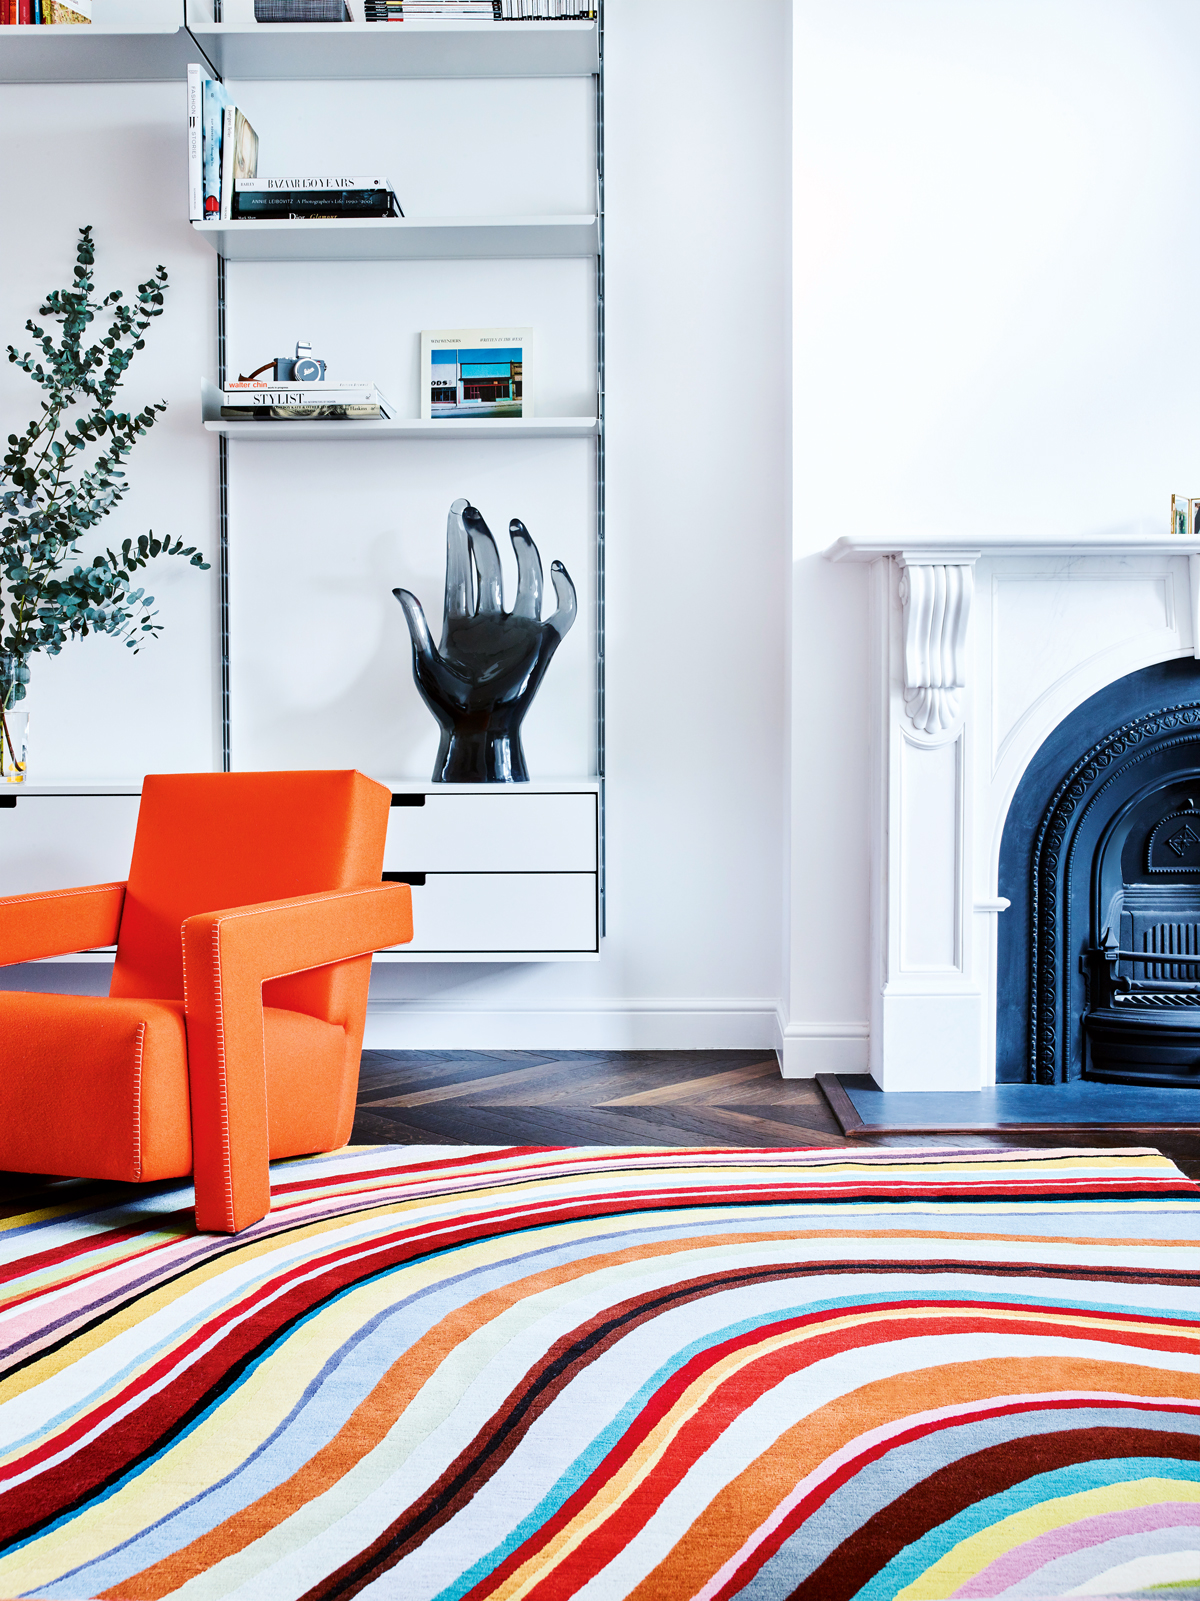 The Swirl Rug By Paul Smith For